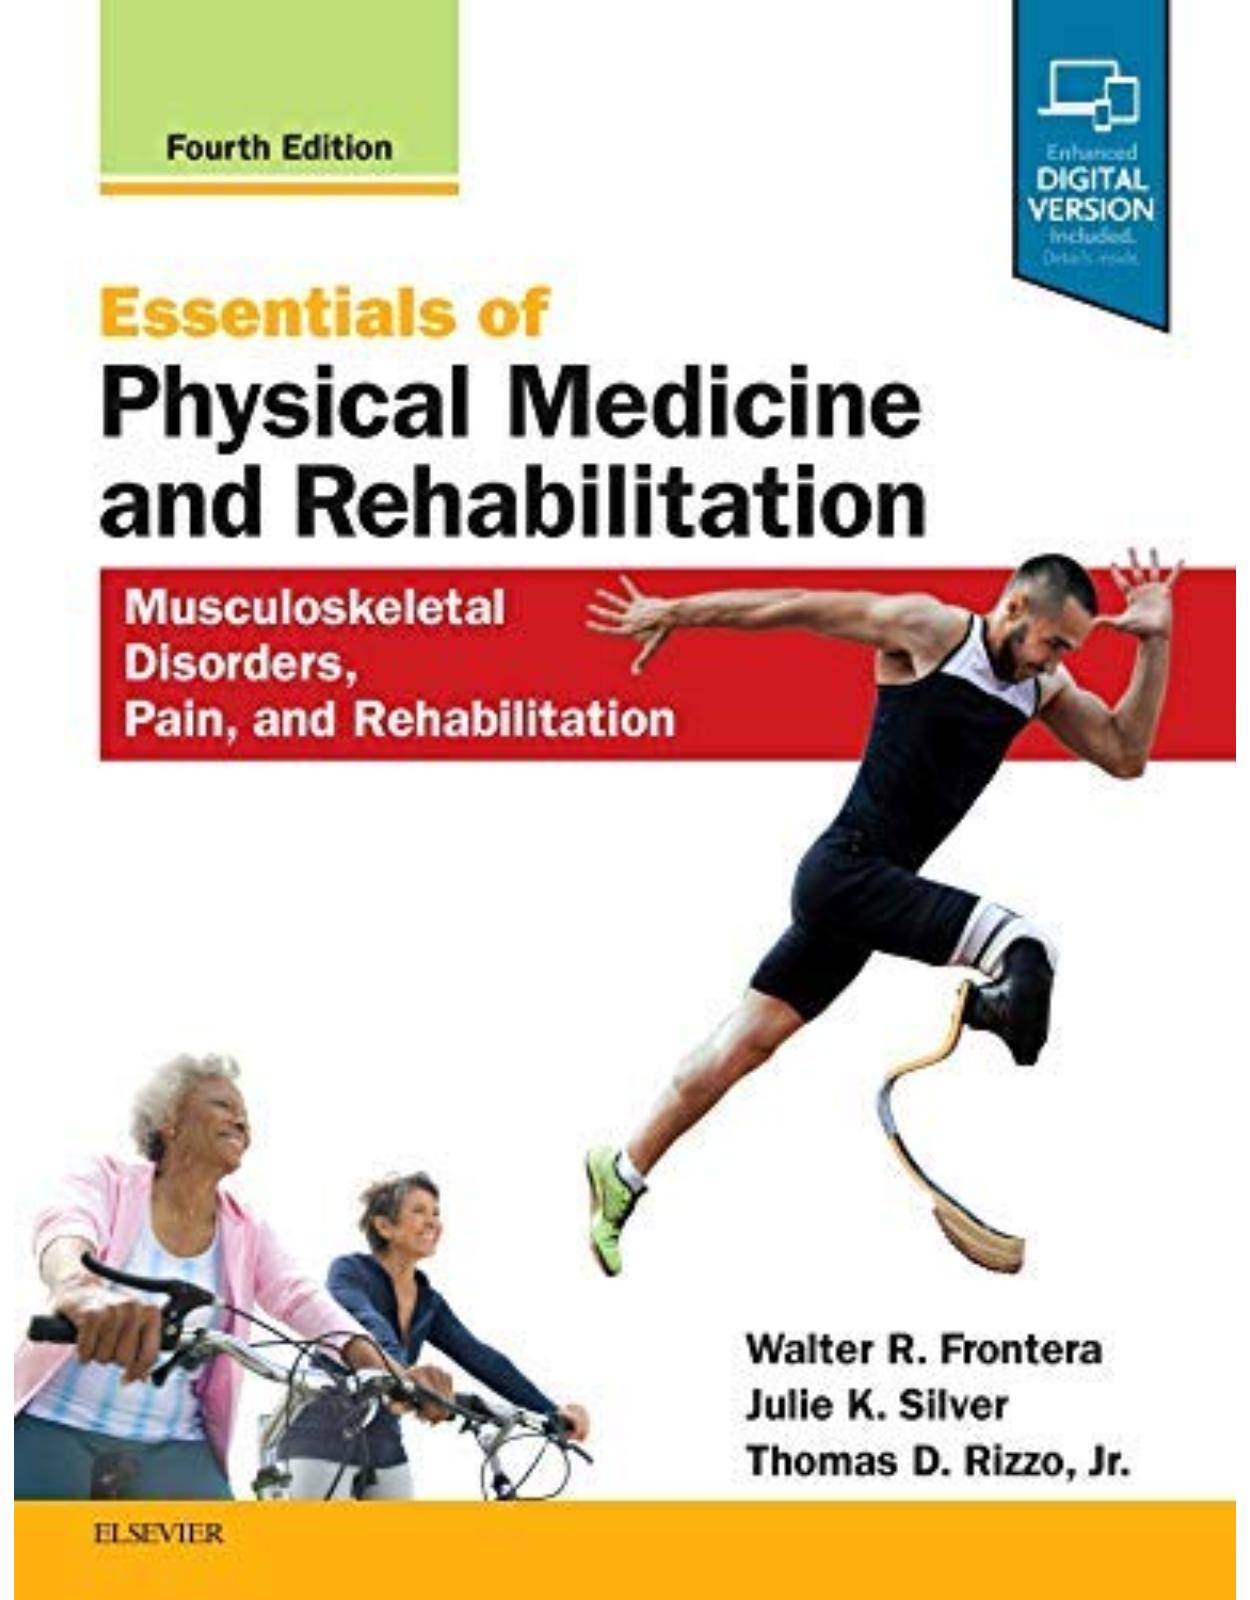 Essentials of Physical Medicine and Rehabilitation: Musculoskeletal Disorders, Pain, and Rehabilitation, 4e